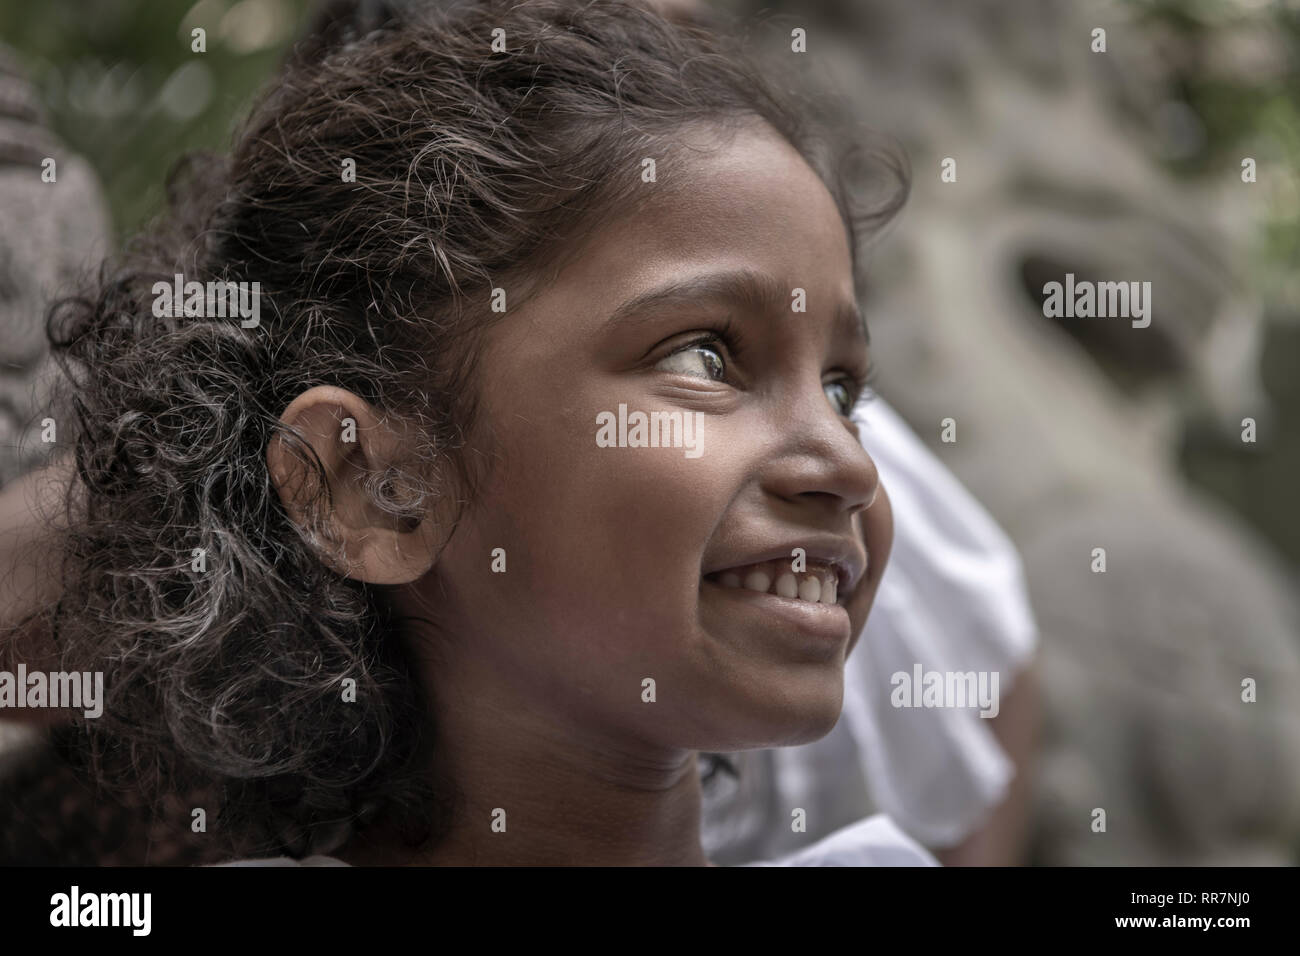 A little girl takes time out from Sunday School at the Gangaramaya Buddhist Temple in Colombo Sri Lanka. - Stock Image